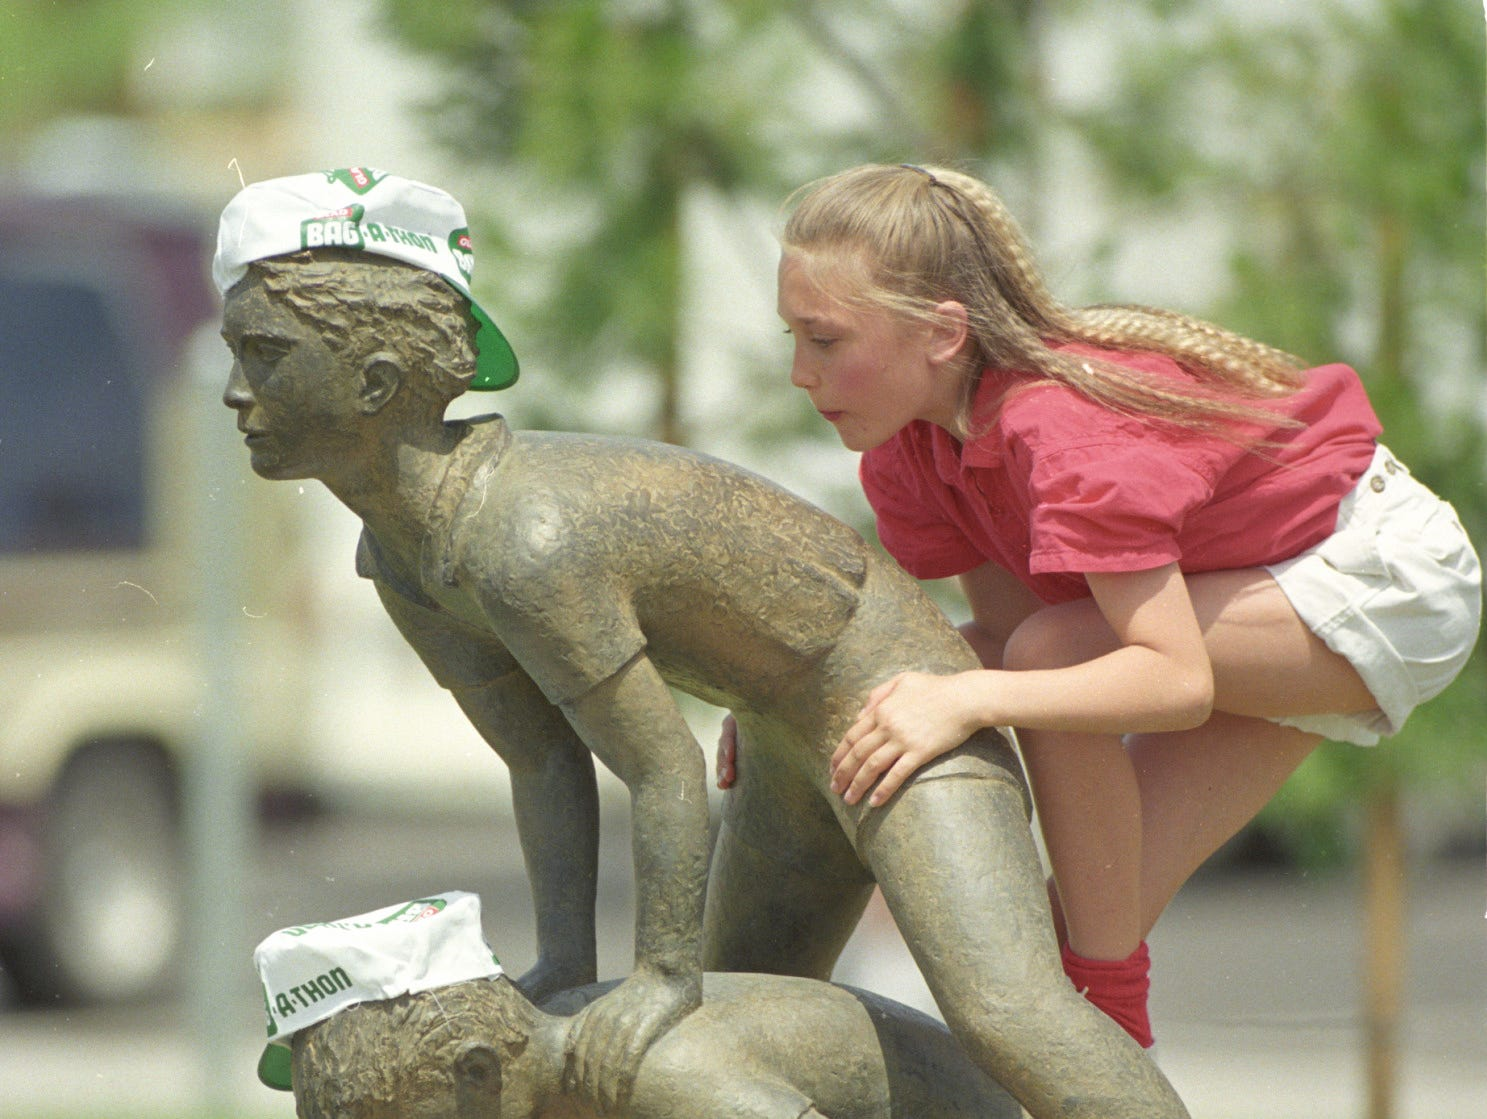 """A young girl exploring """"Children At Play,'' an art sculpture during her April 25, 1992 visit to Margaret T. Hance Park."""